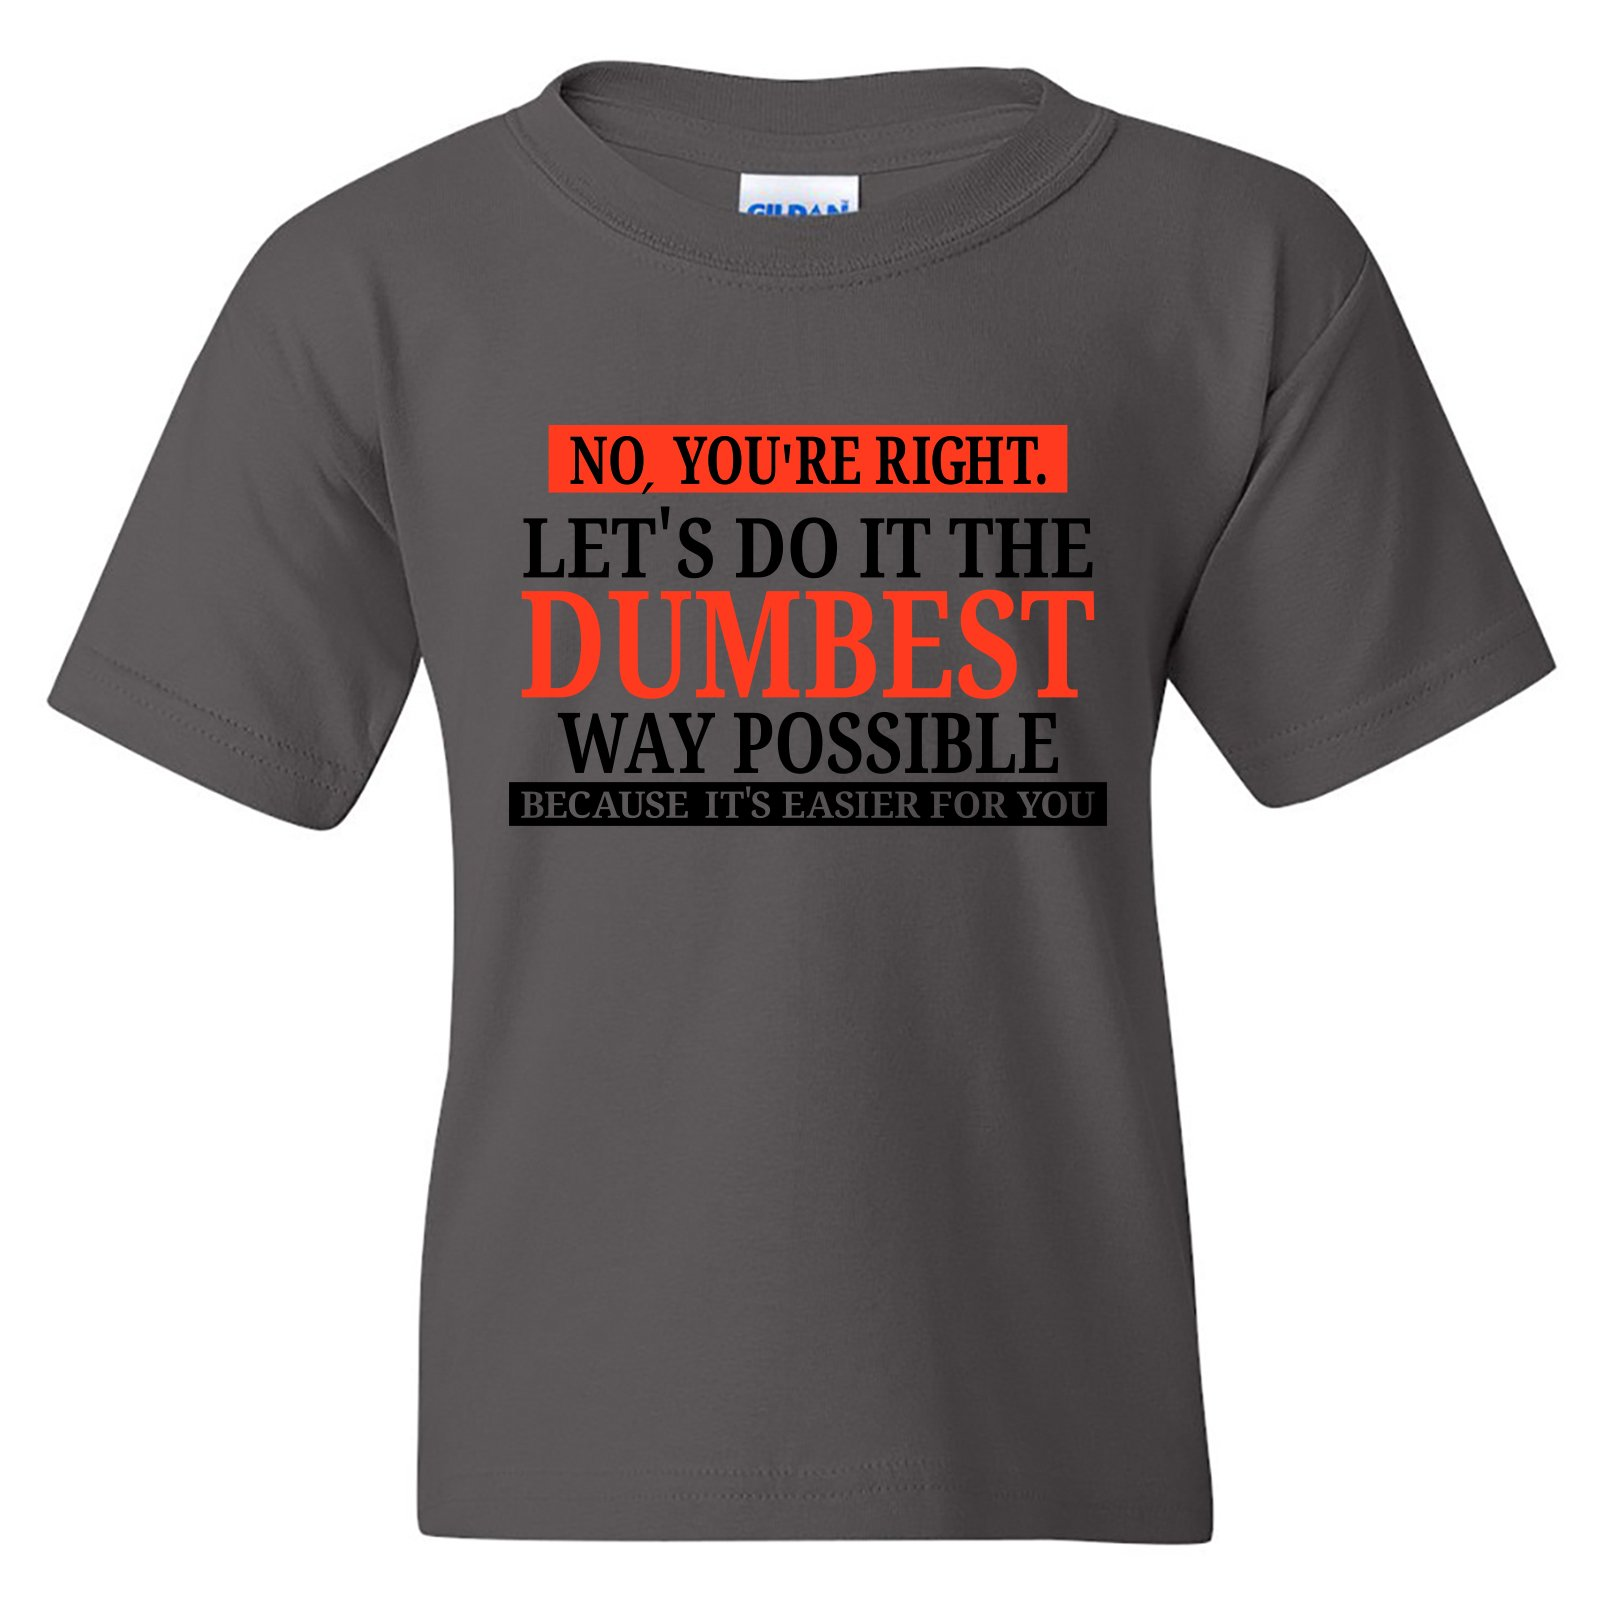 No You Re Right Let S Do It The Dumbest Way Possible Funny S T Shi Shirts